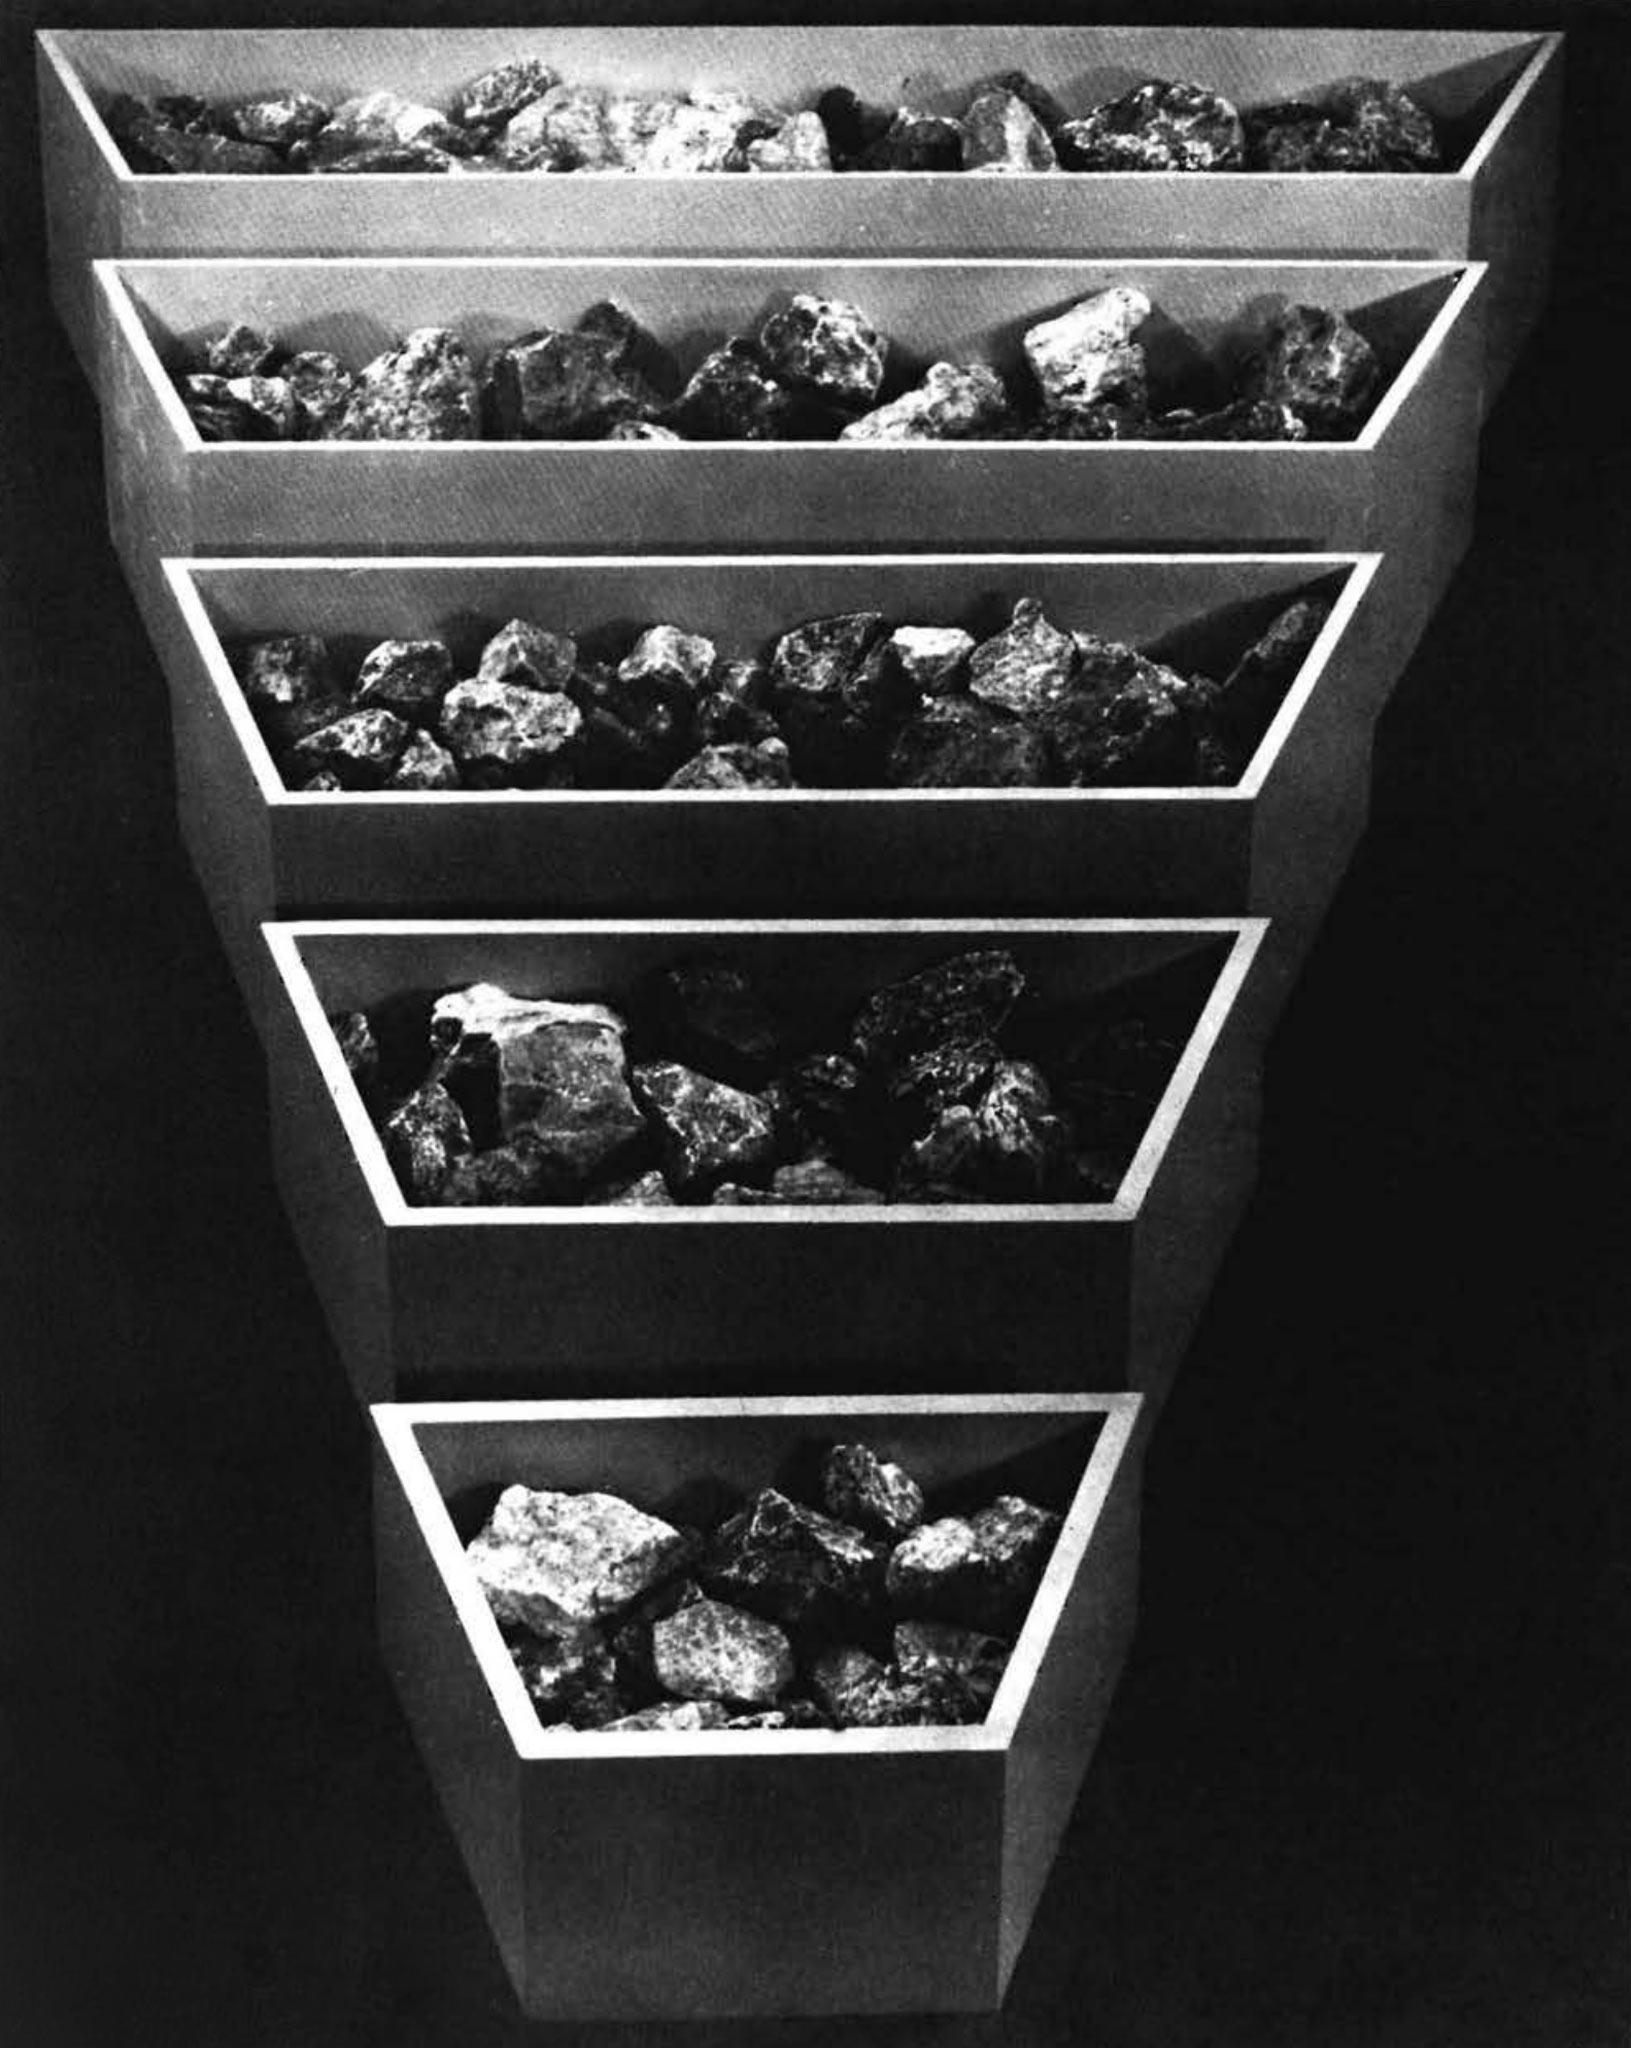 five polygon shaped bins arranged from largest at the top to smallest at the bottom filled with rocks